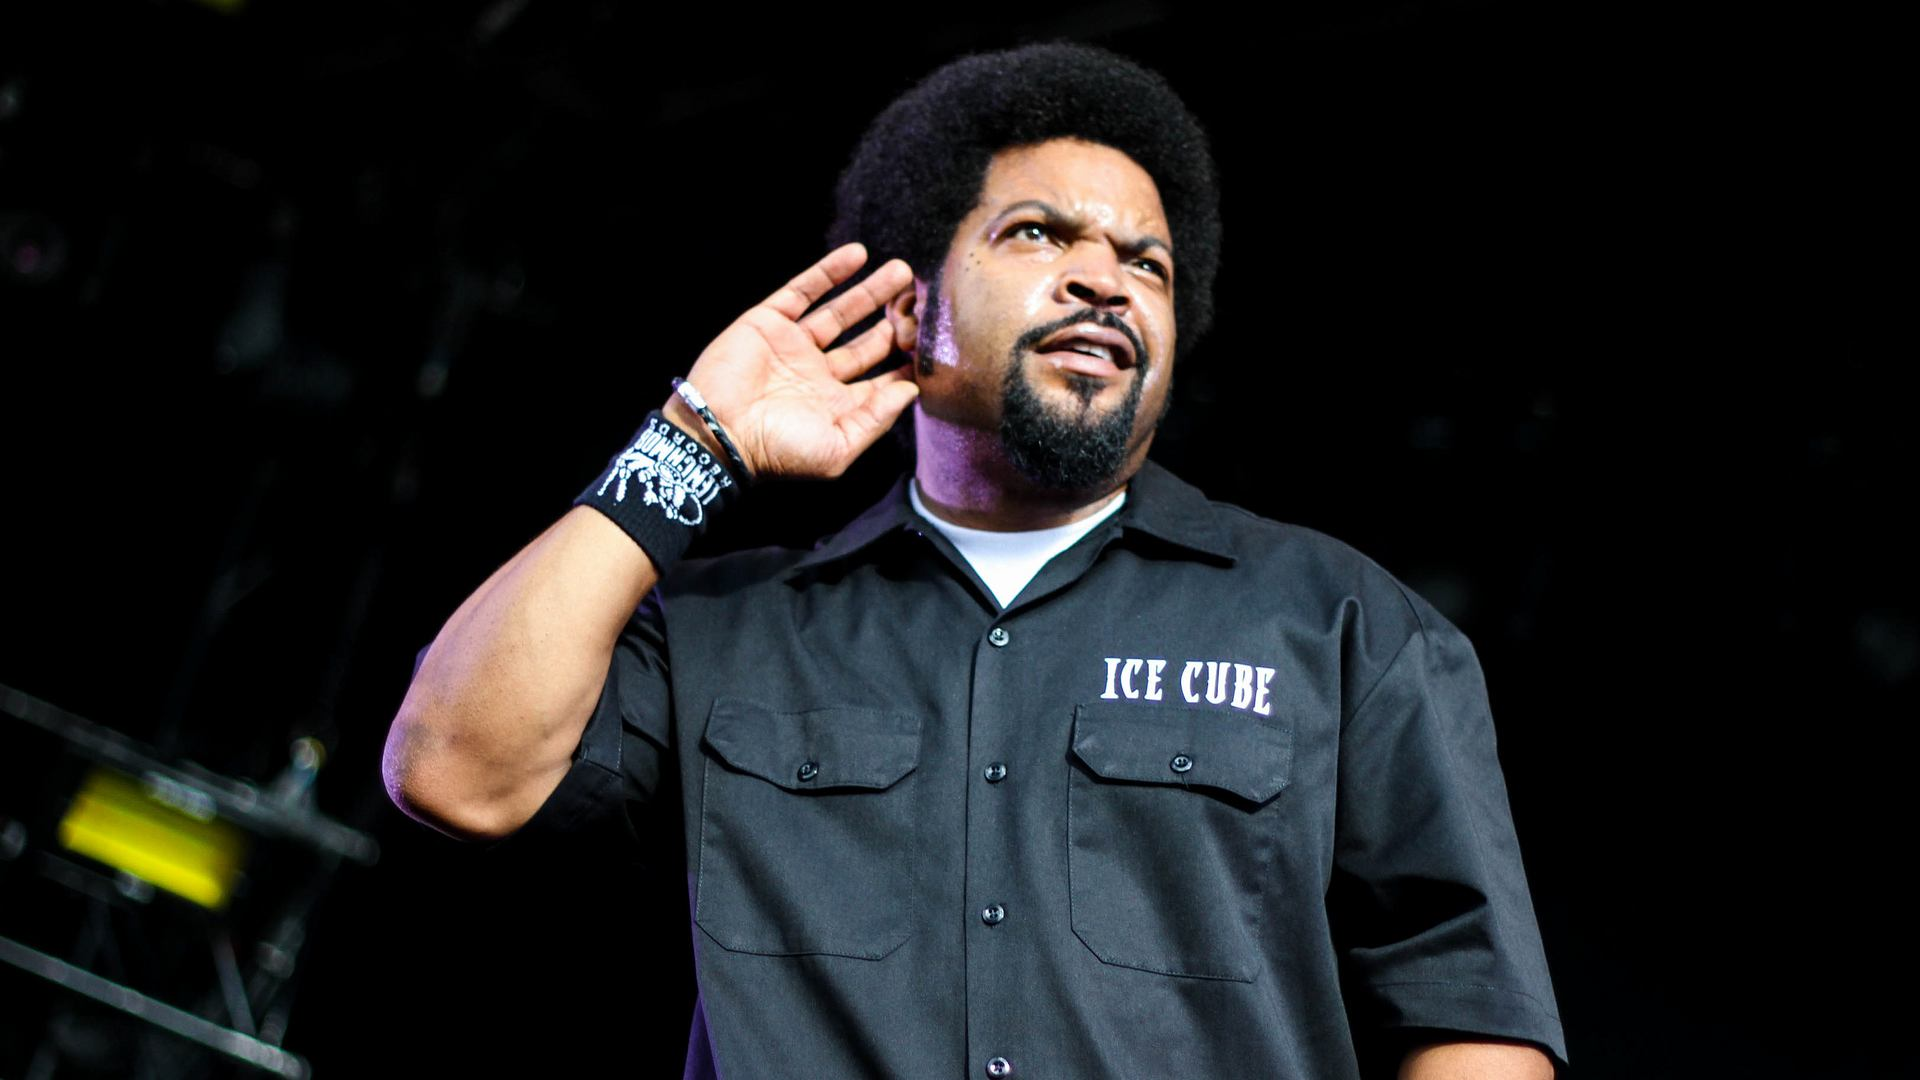 Music - Ice Cube Wallpaper Ice Cube Wallpaper Iphone